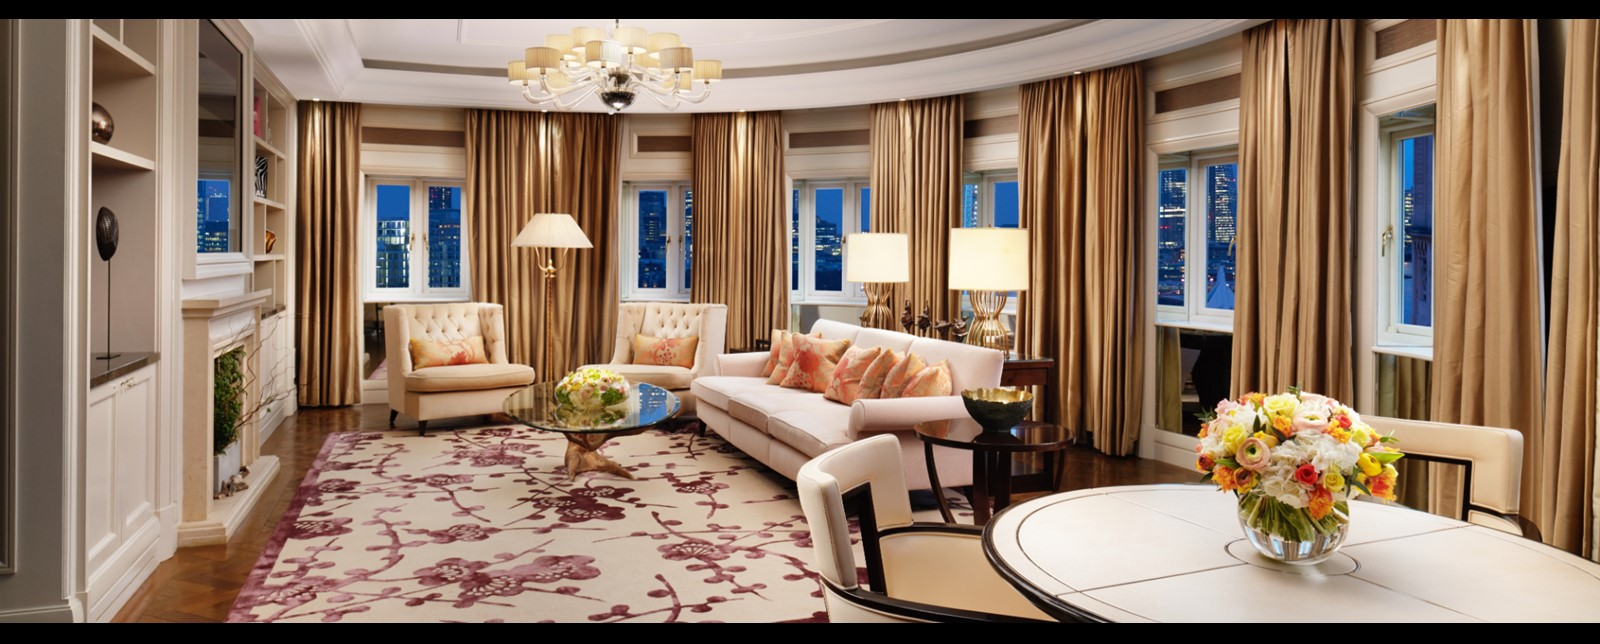 corinthia london royal penthouse living room